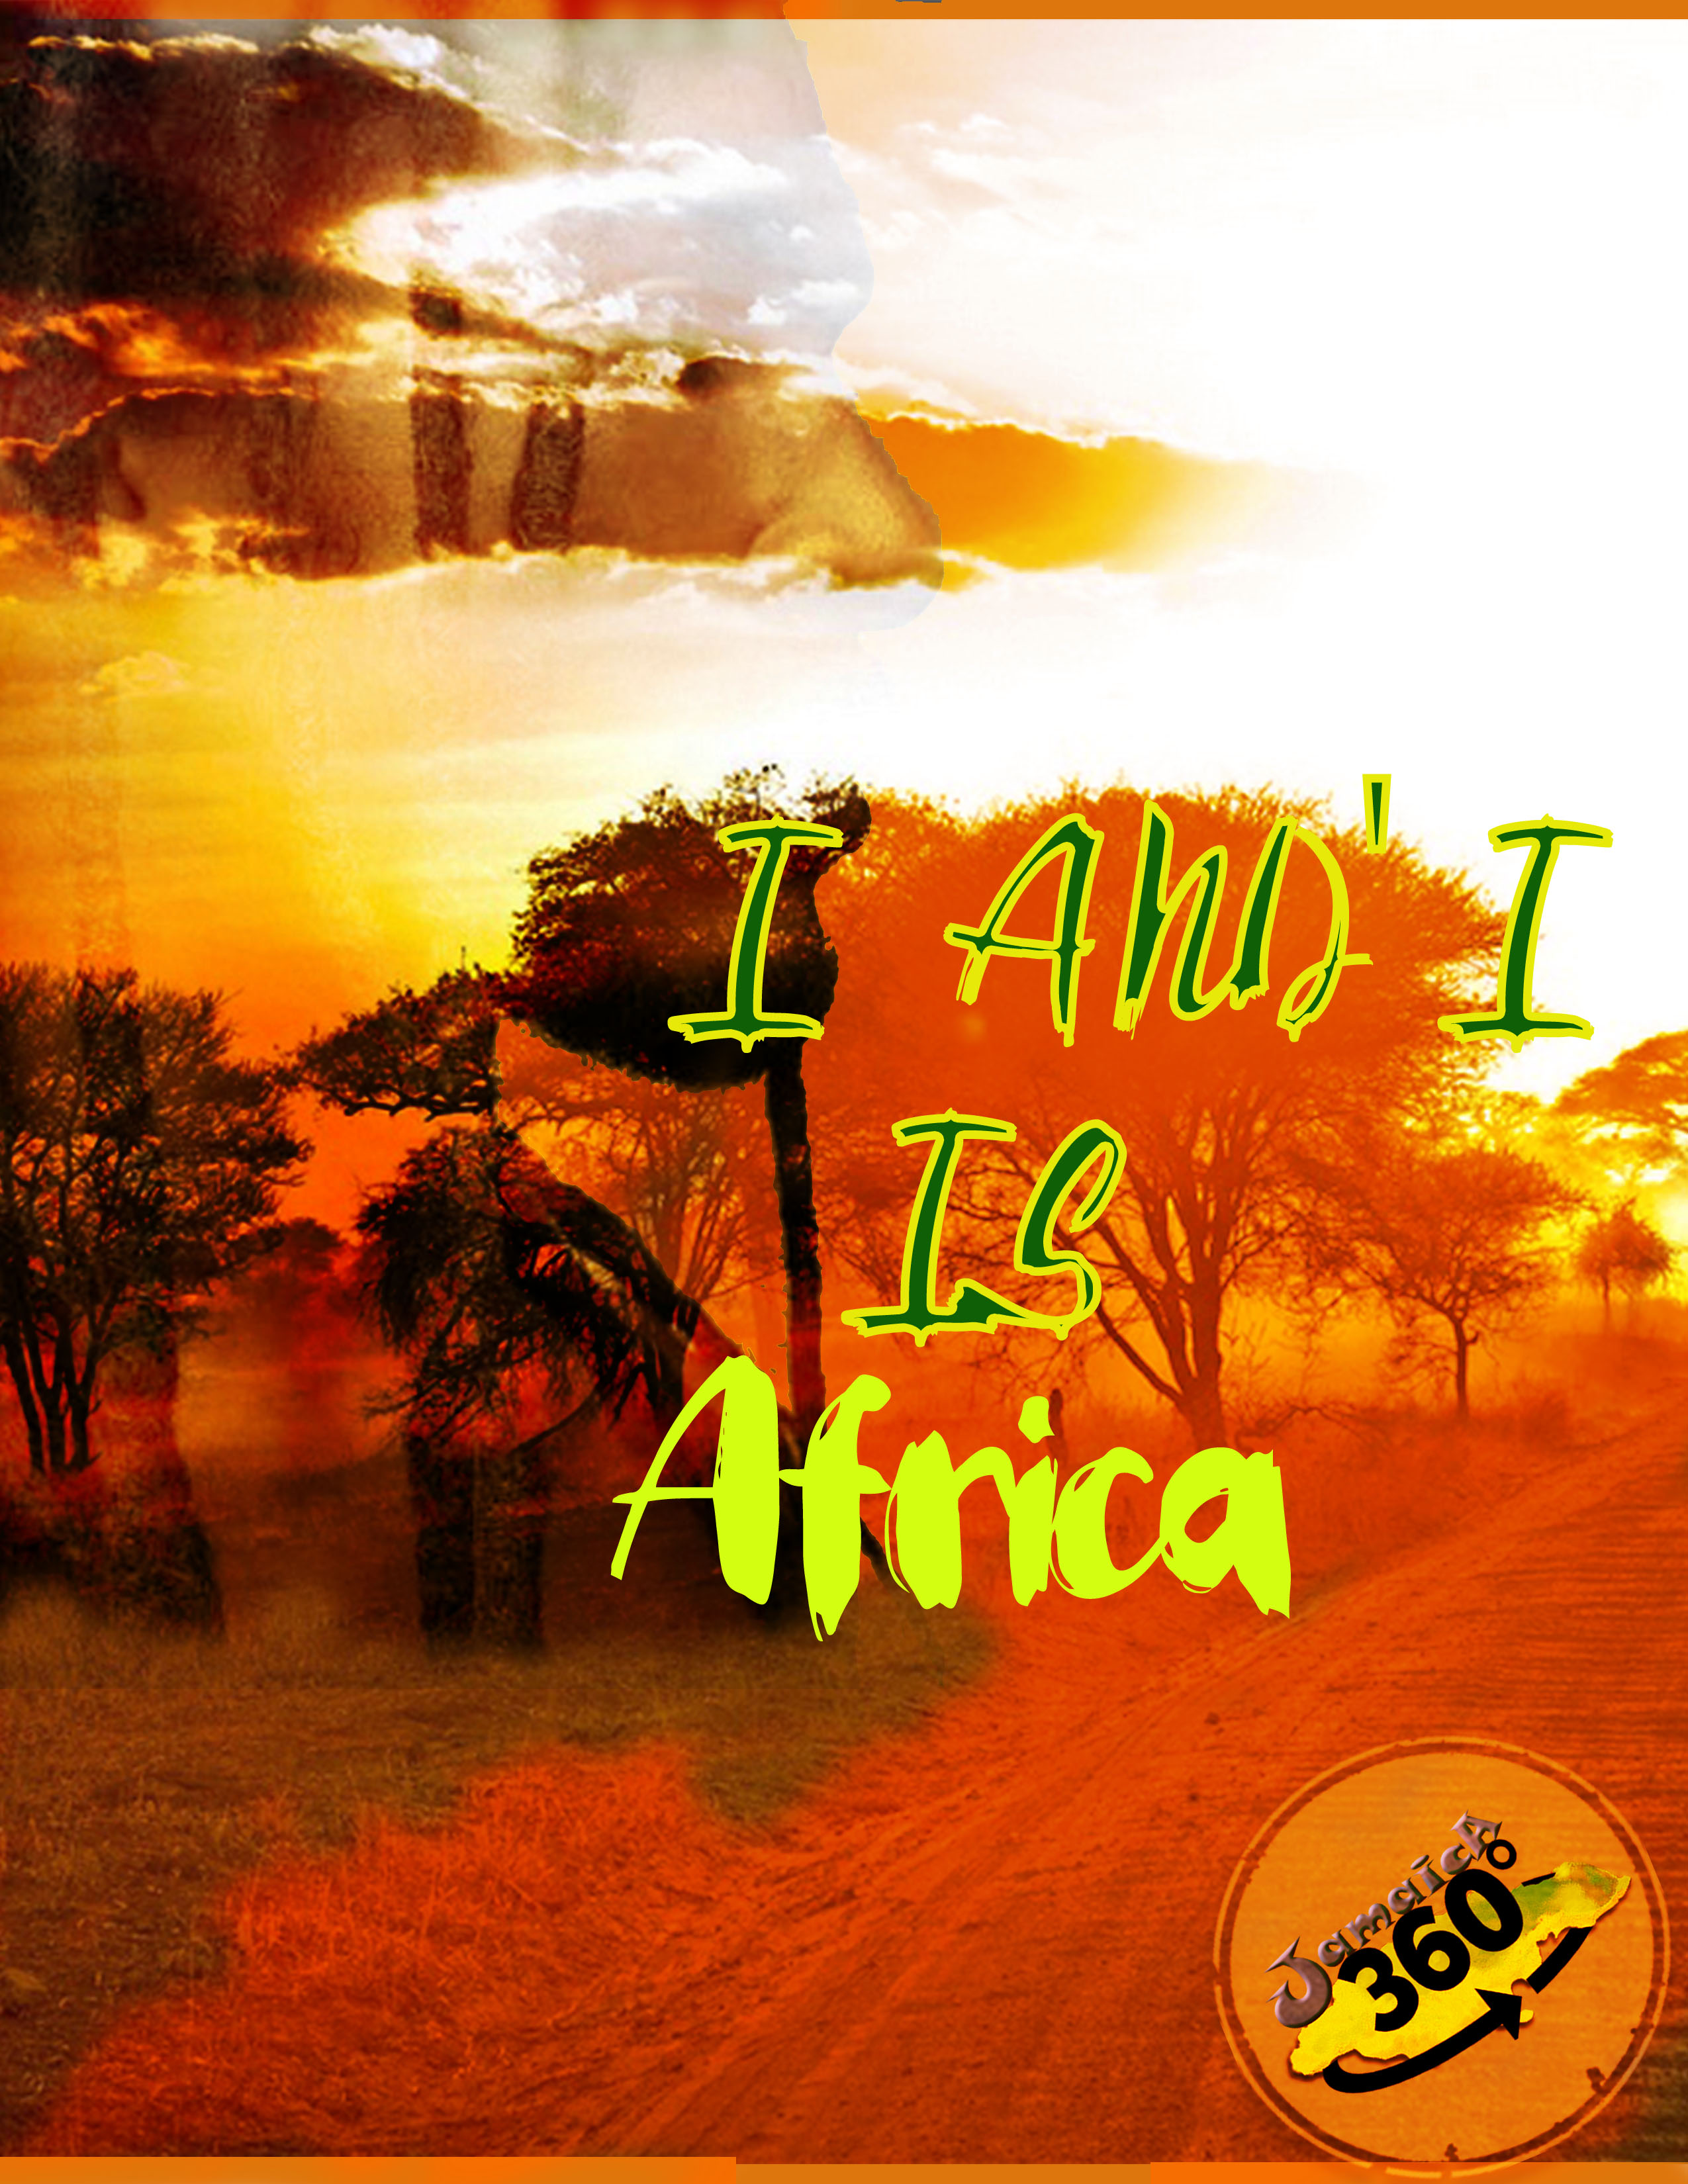 Free Africa Wallpaper Poster for download